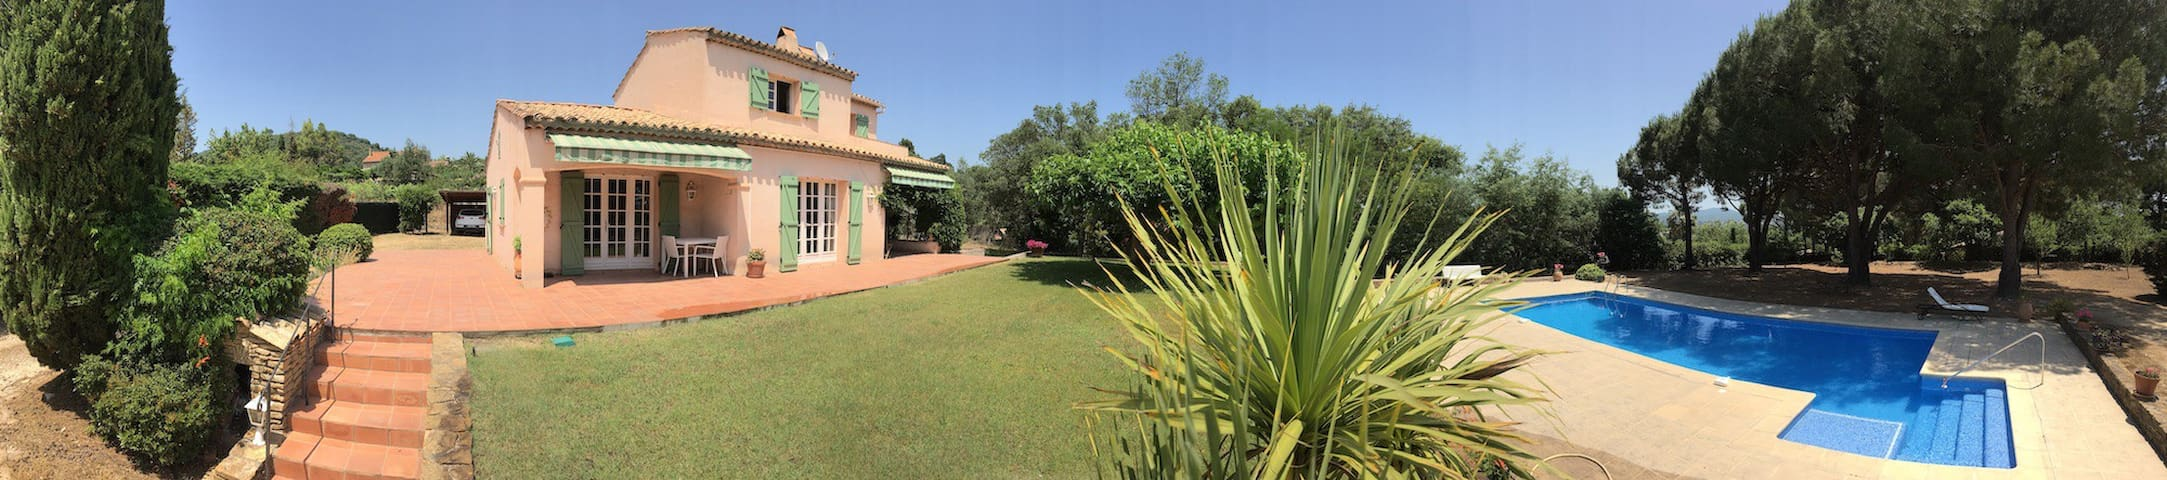 110m2 villa, 3,000m2 garden with large pool